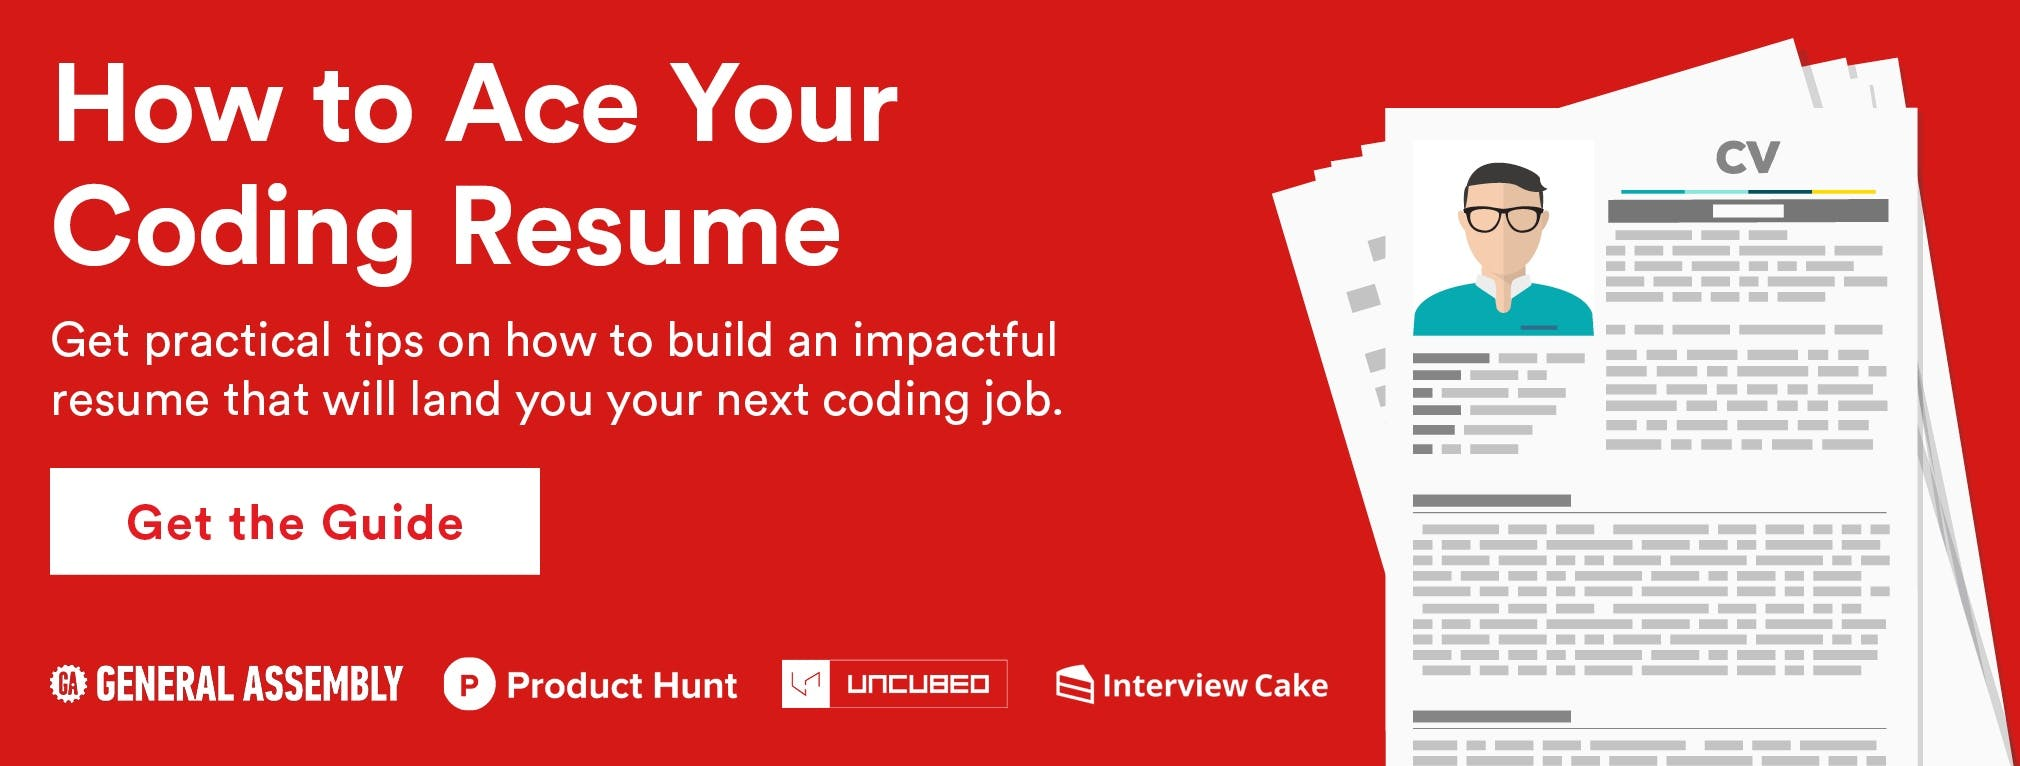 How to Ace Your Coding Resume 💯 - Product Hunt